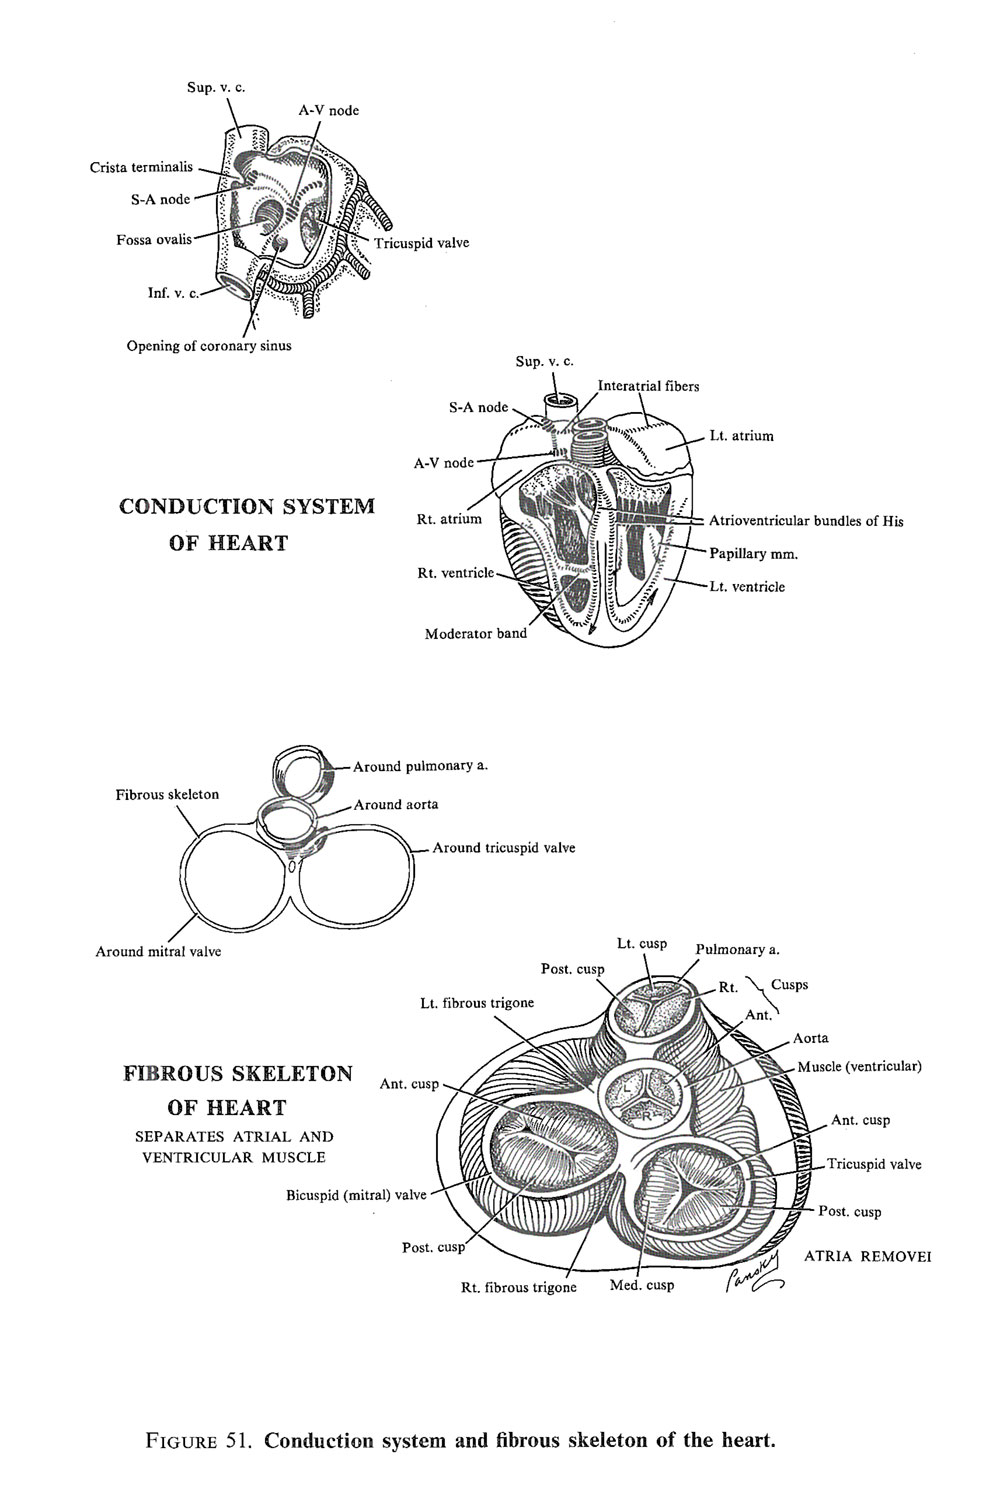 the cardiac valves and  conducting system: image #2